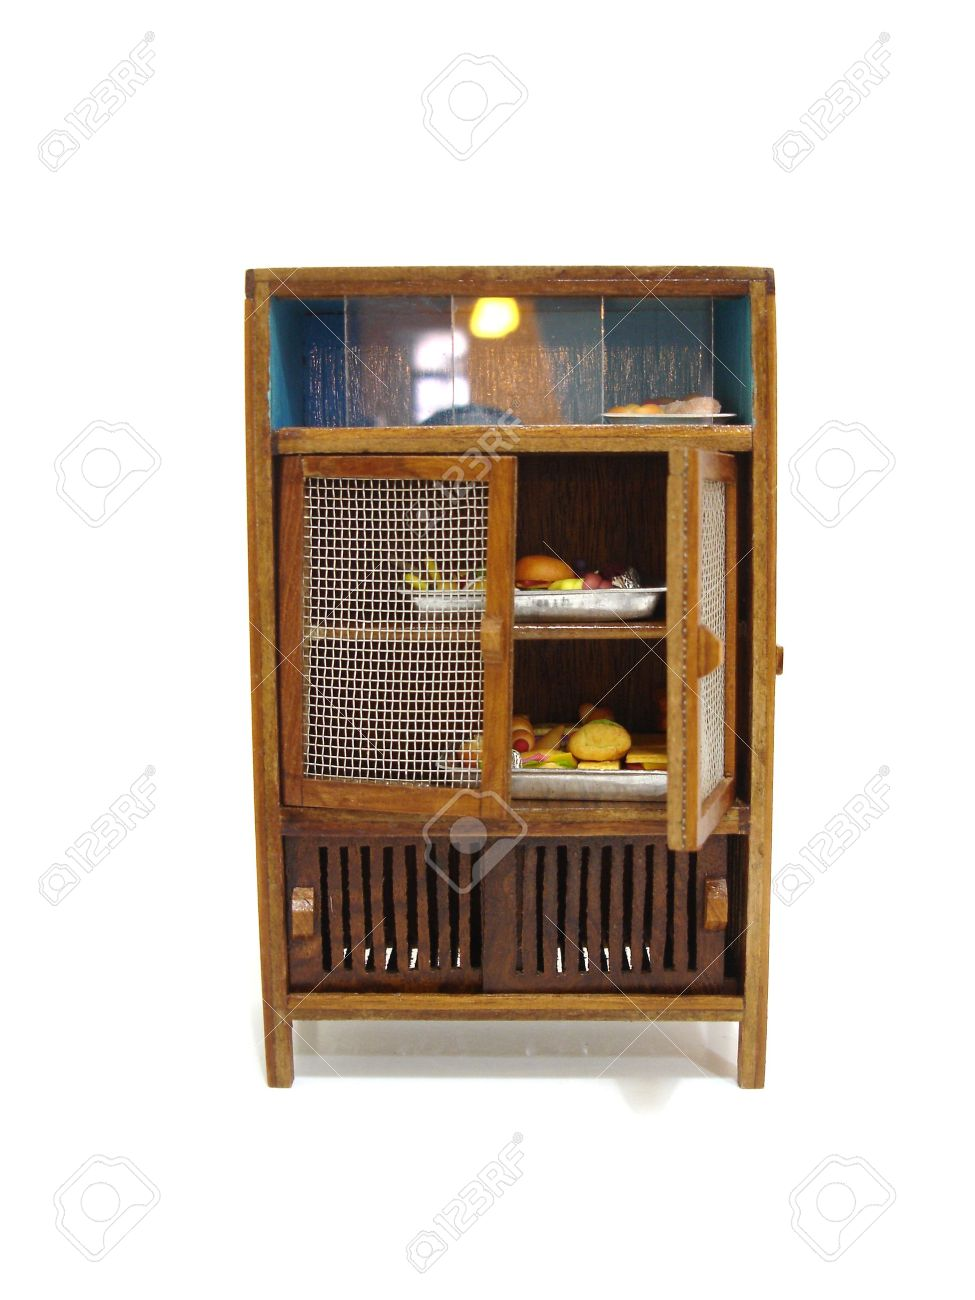 Asian Food Storage Cabinet Stock Photo, Picture And Royalty Free ...